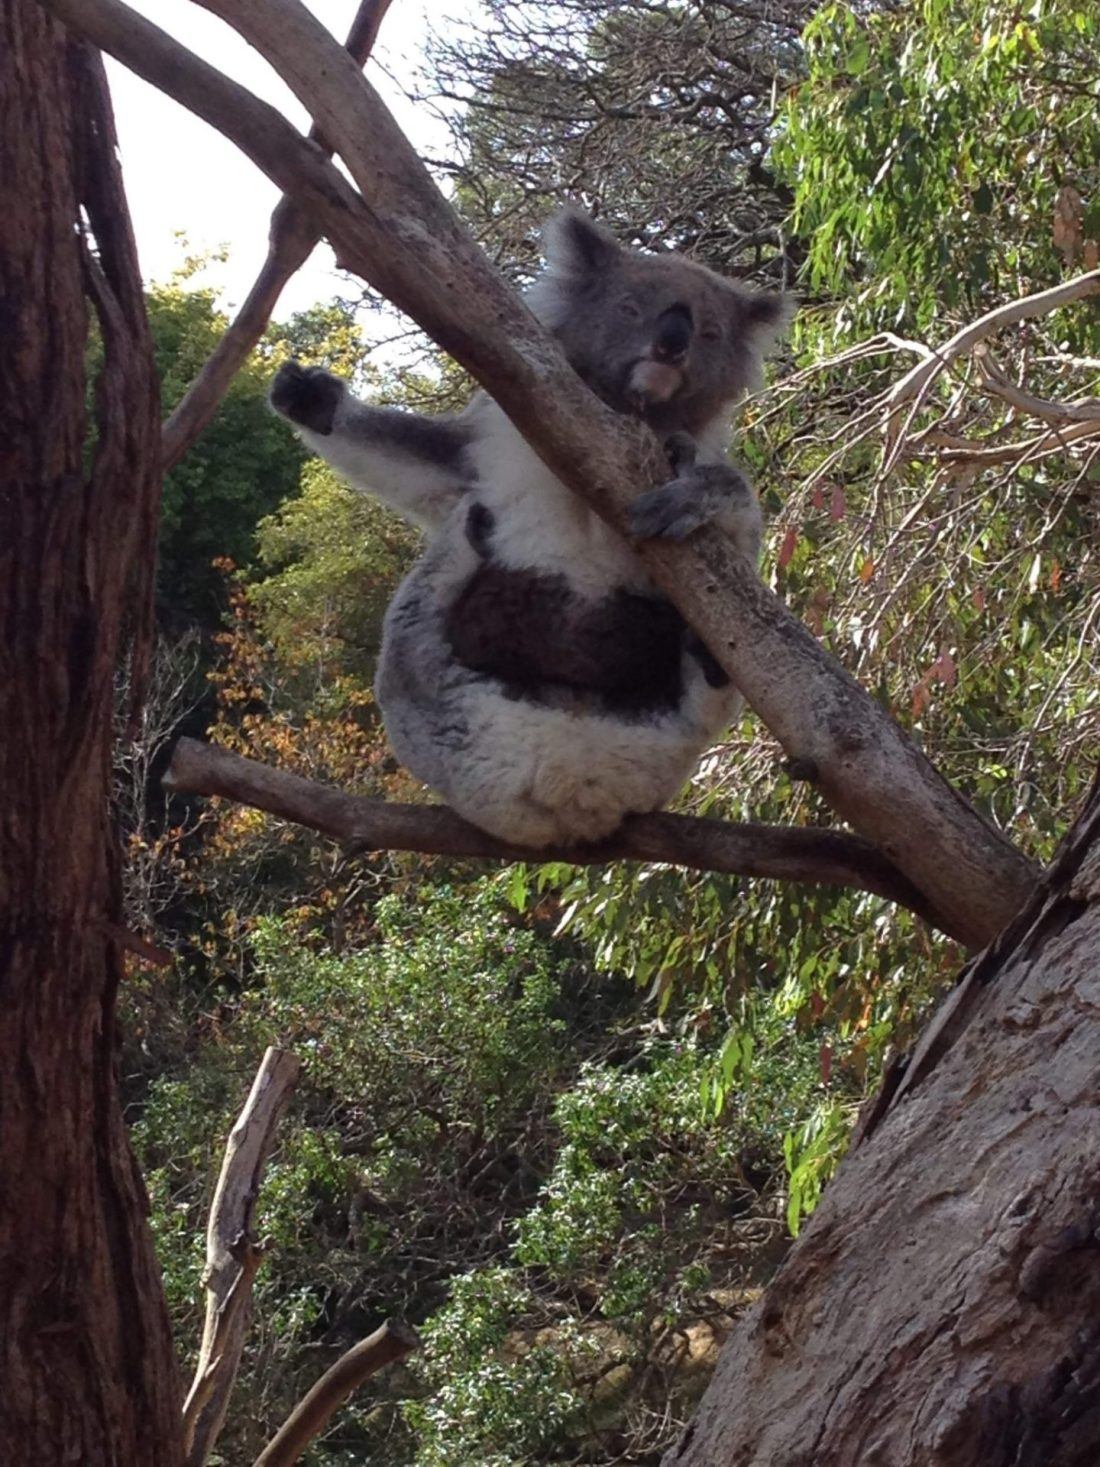 A koala at Phillip Island Wildlife Park